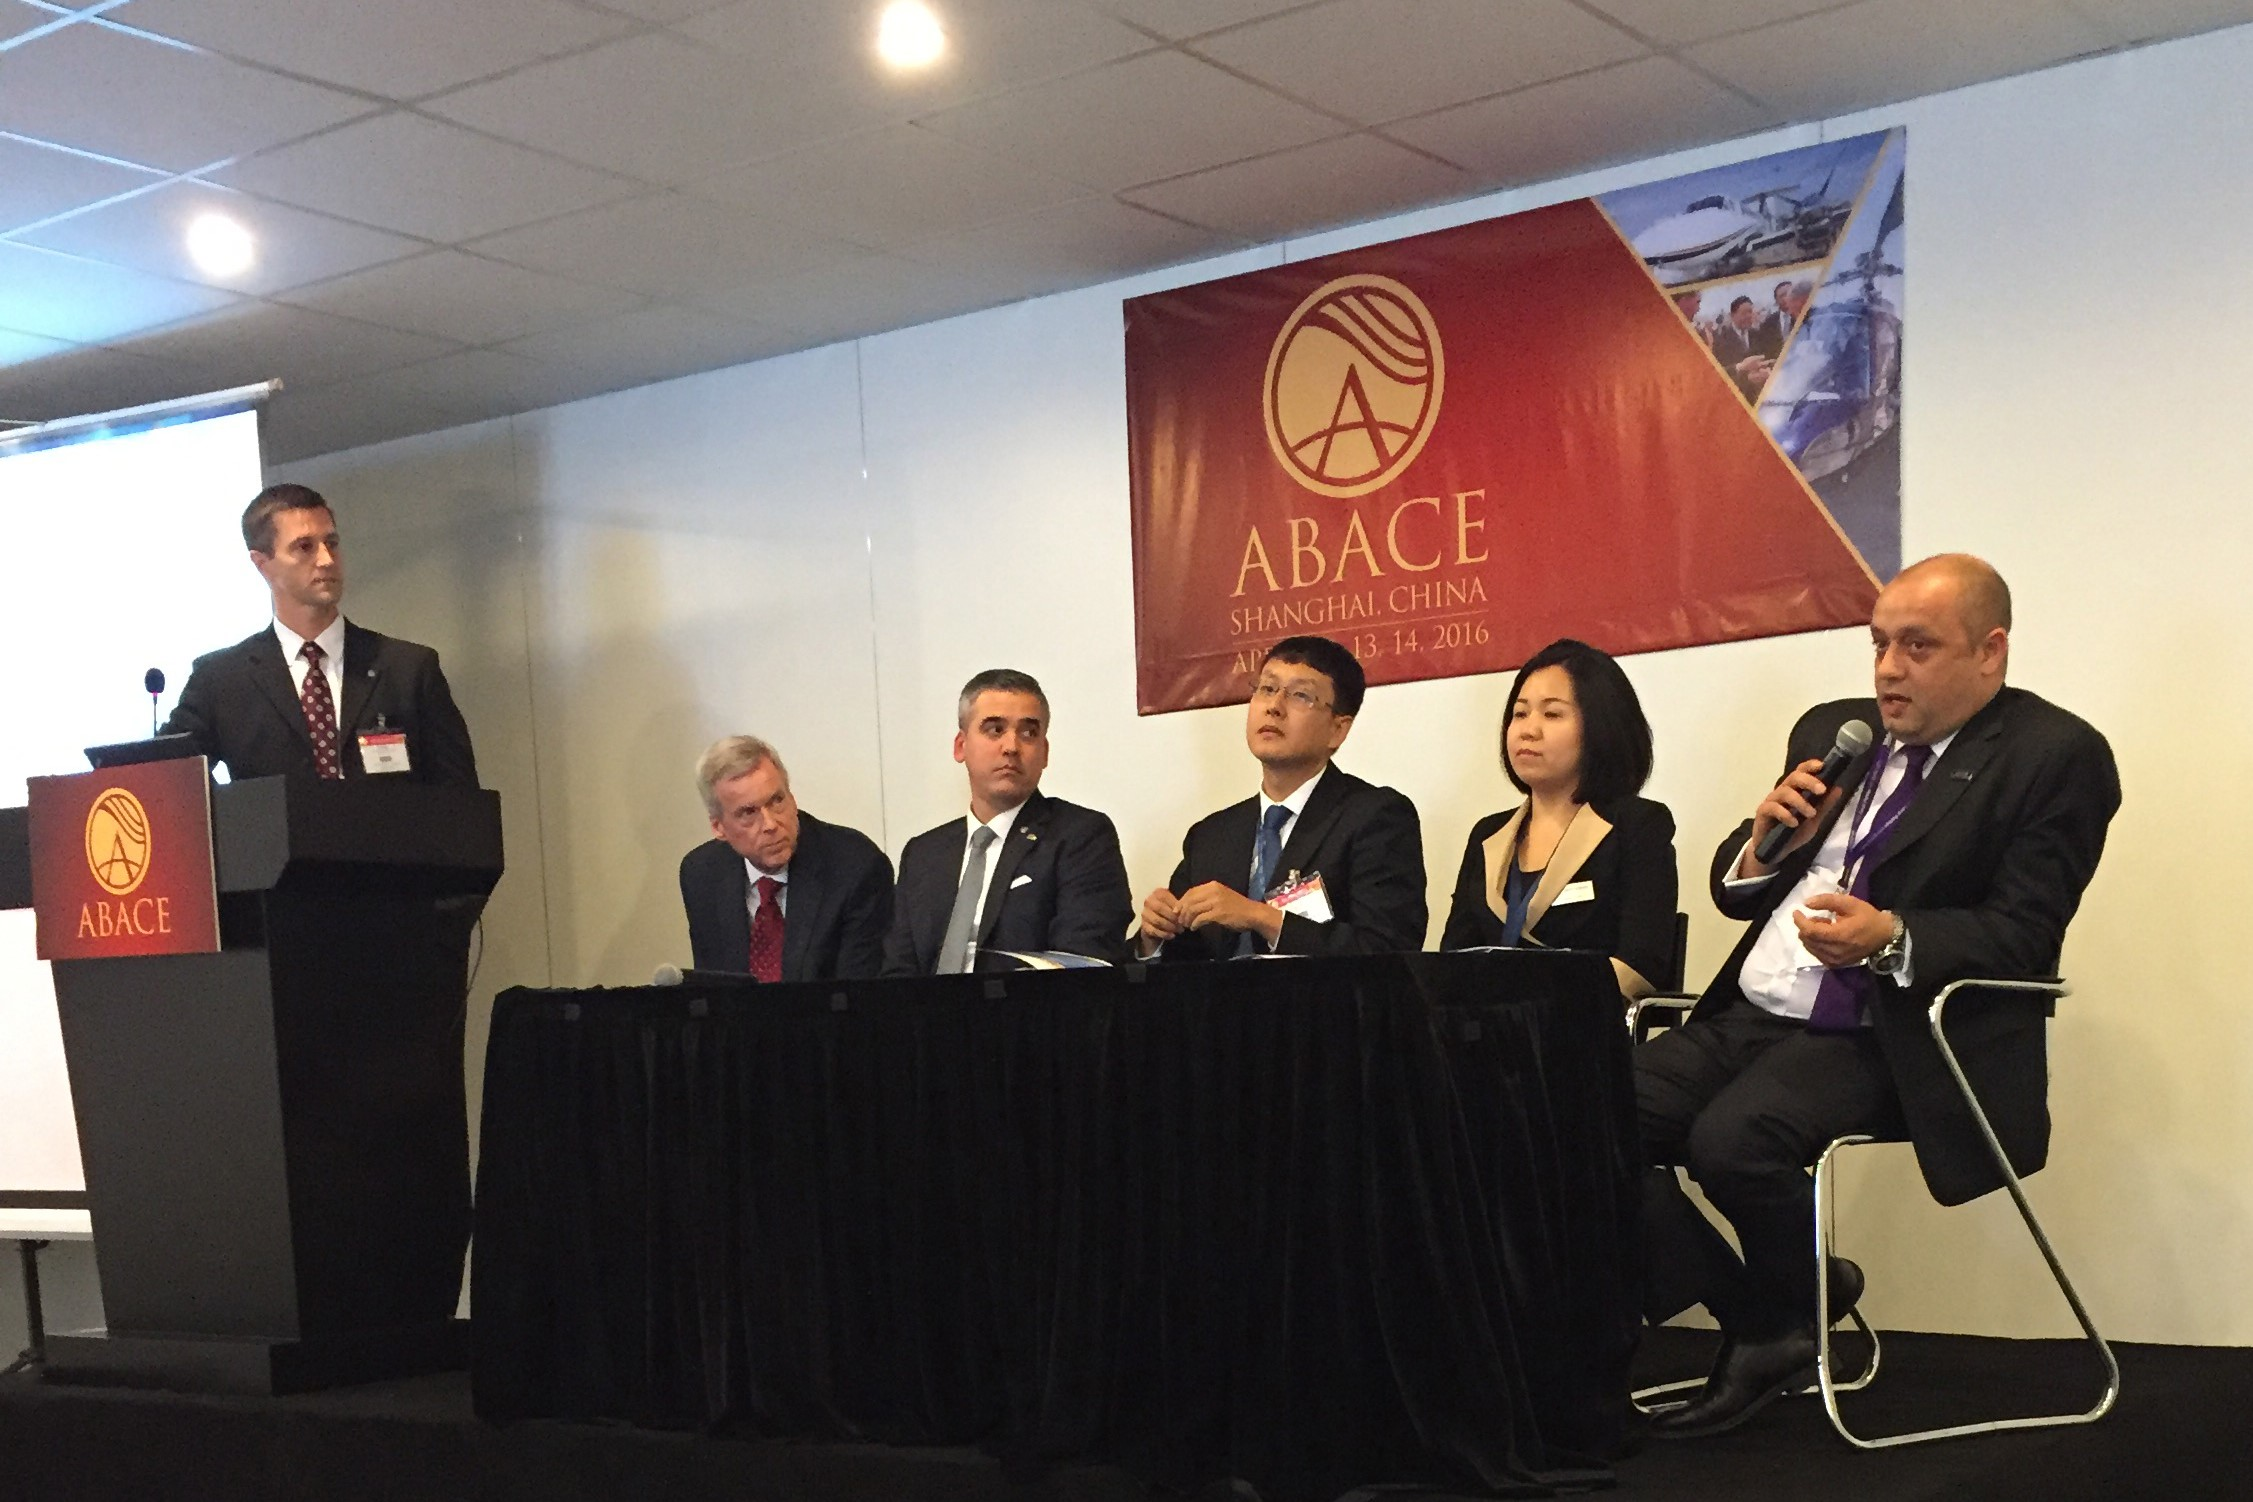 UAS Highlights Best Practice For International Operations At ABACE 2016